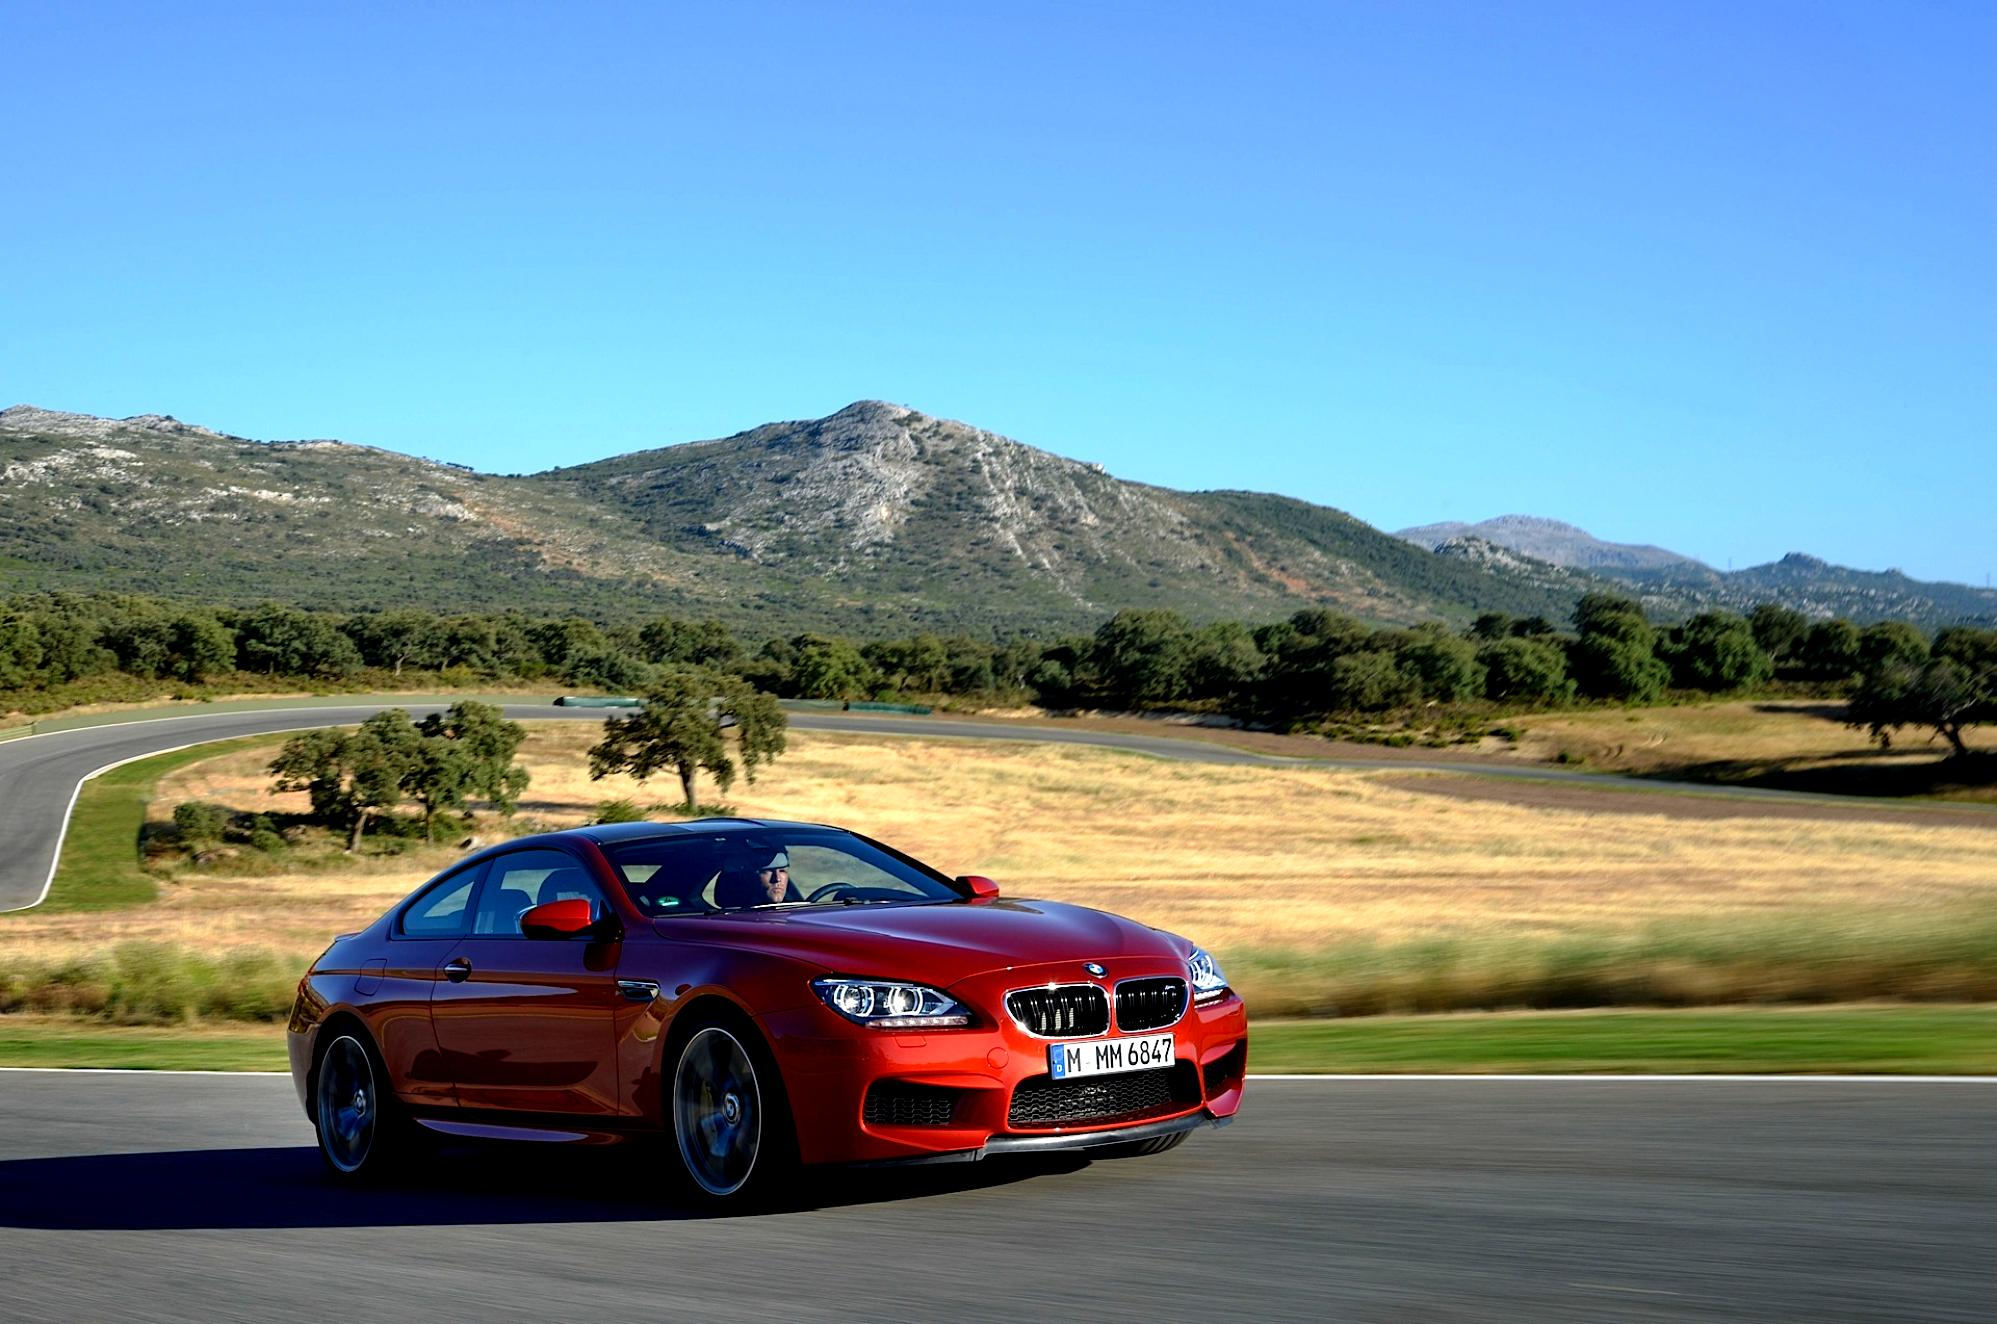 BMW M6 Coupe F13 2012 #32